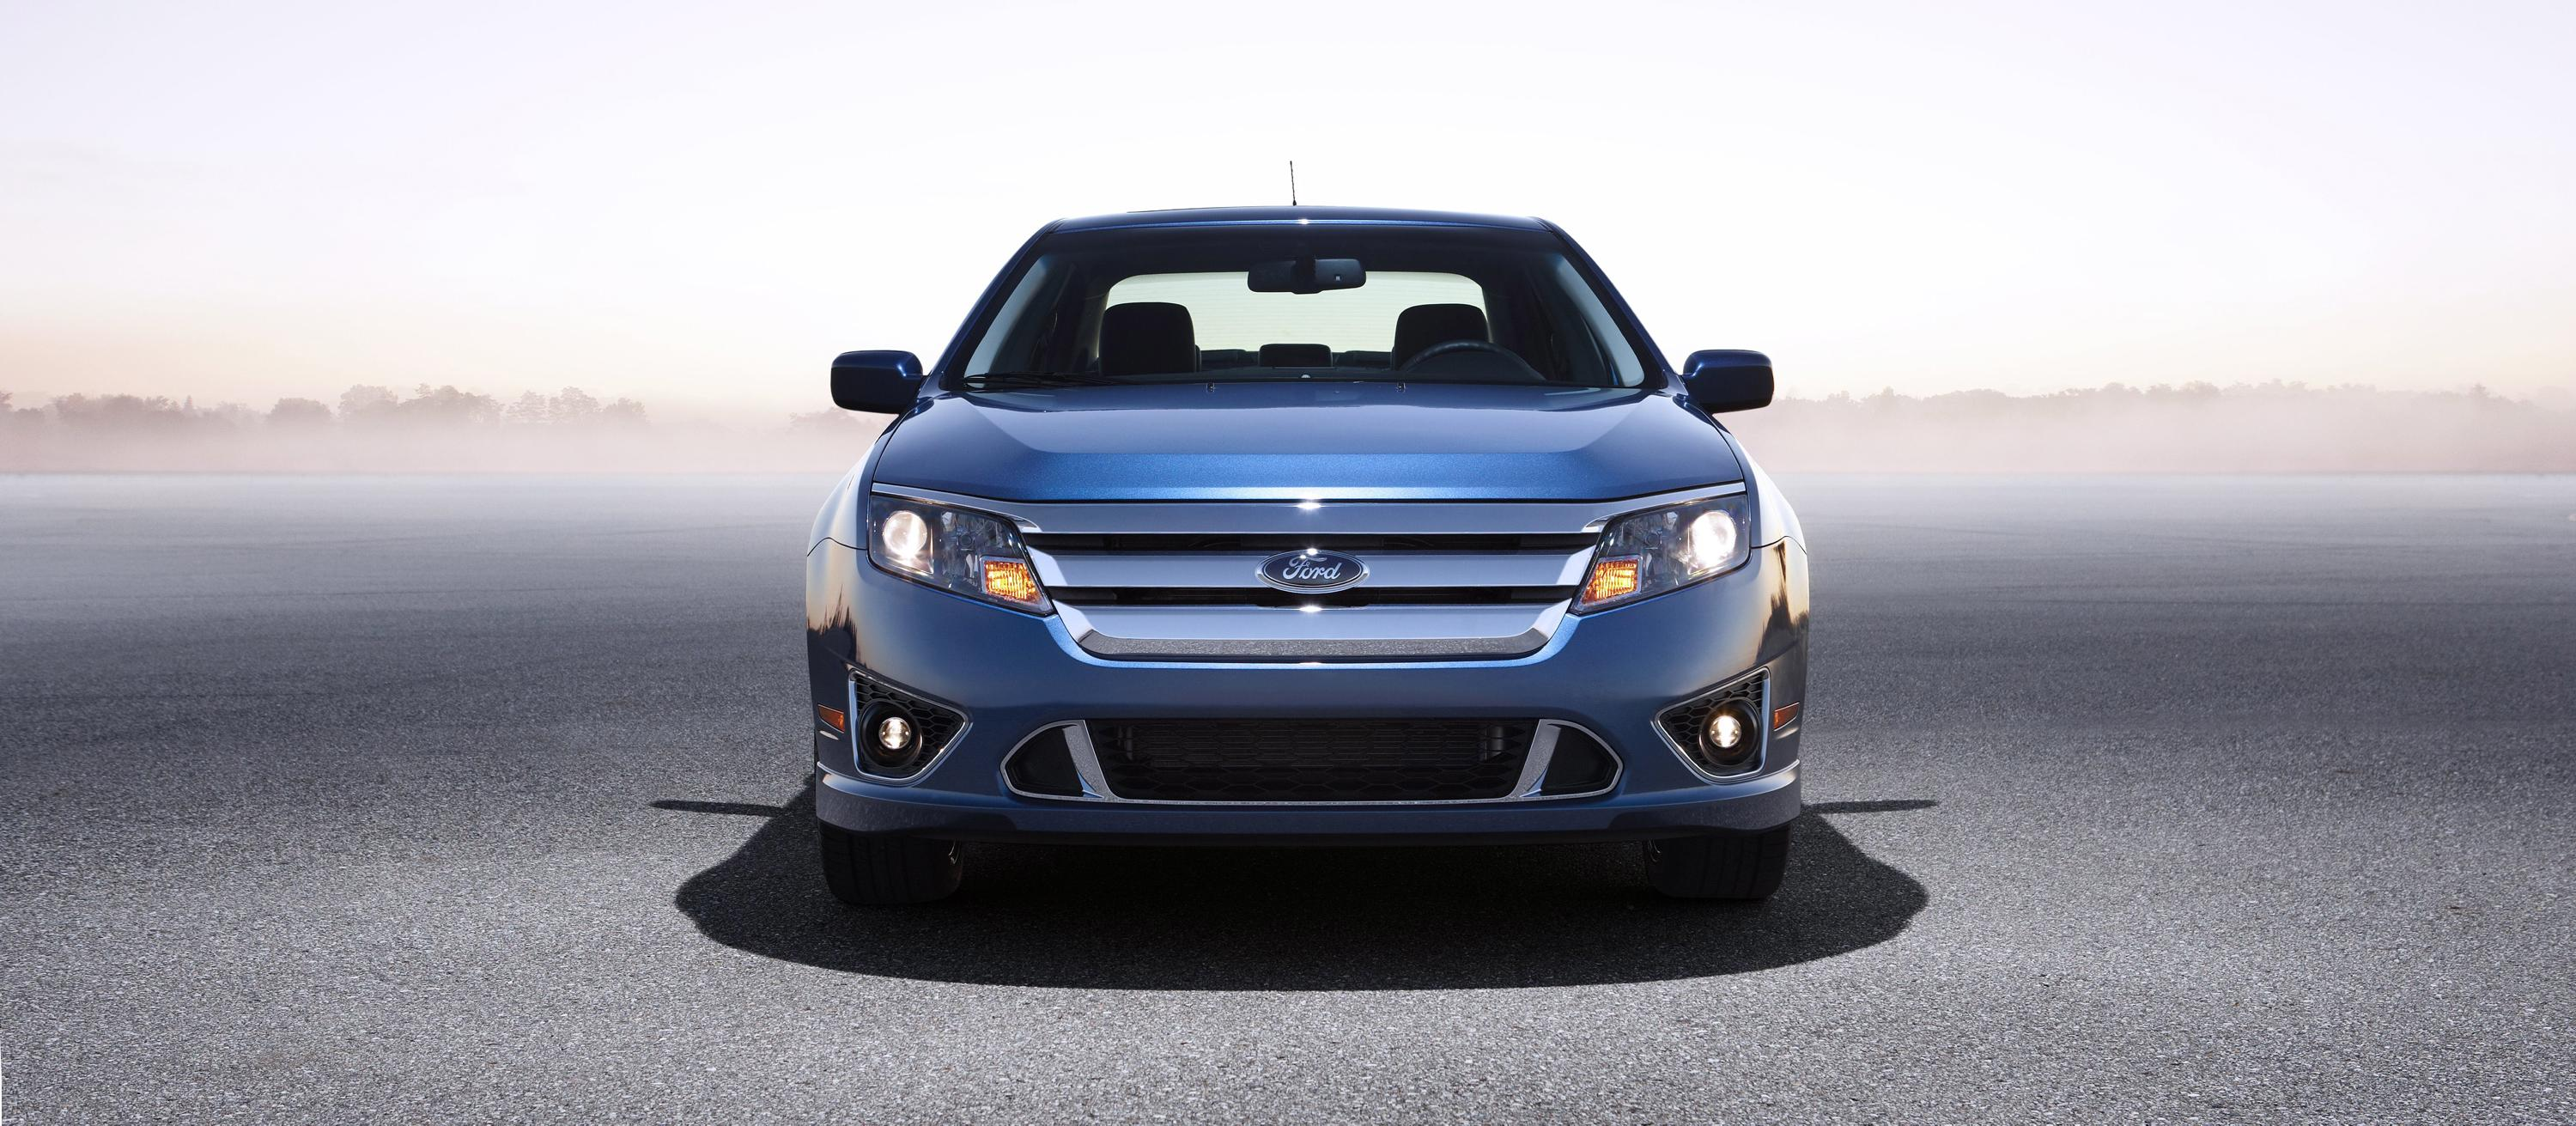 2010 Ford Fusion   Top Speed. »